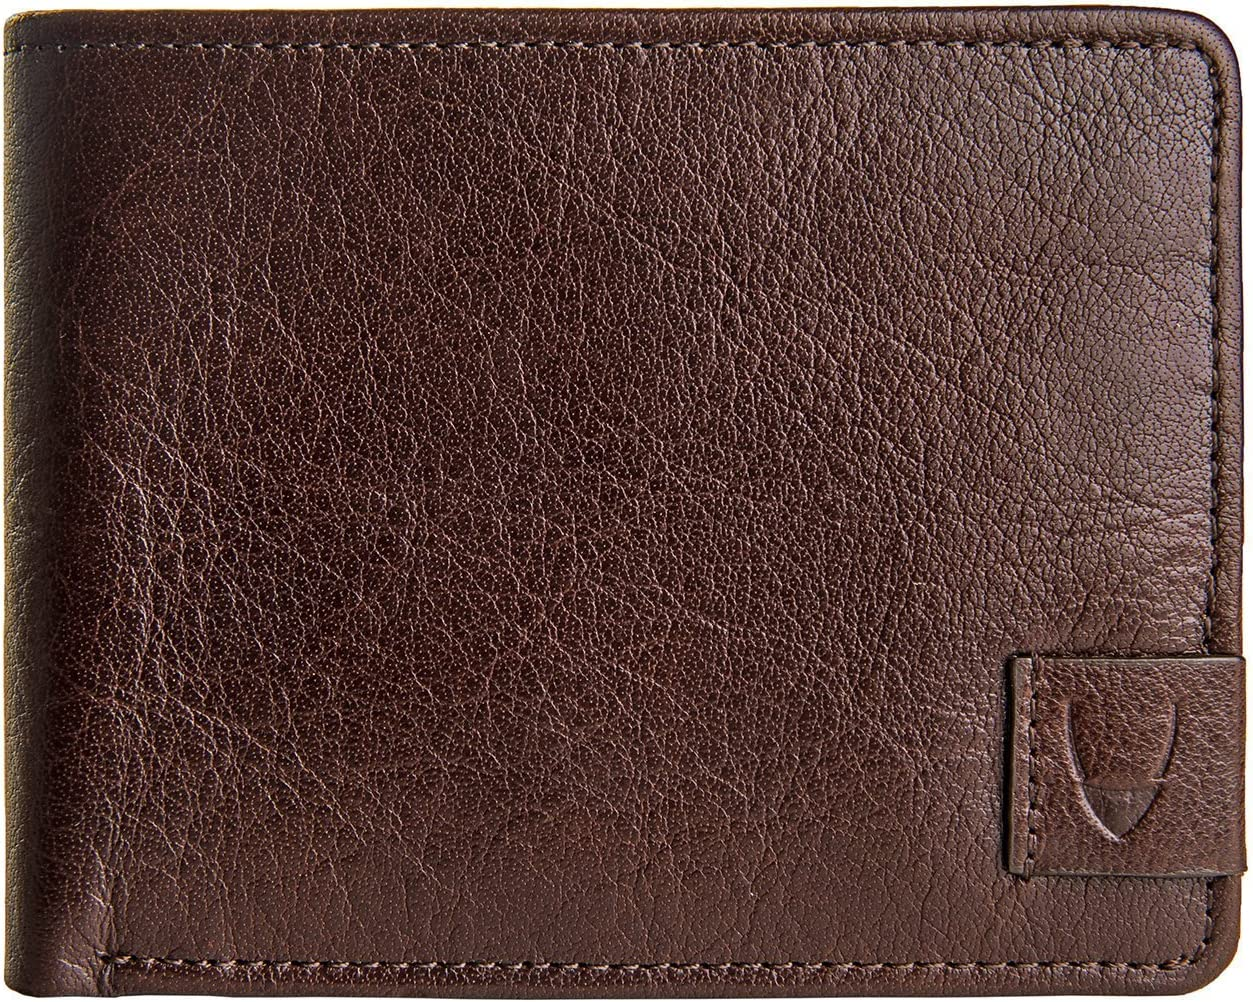 HIDESIGN Vespucci Slim Genuine Buffalo Leather Bifold Wallet with RFID Shielding Technology & 6 Card Slots - Size (L x H - 4.5 x 3.5 inches), Brown